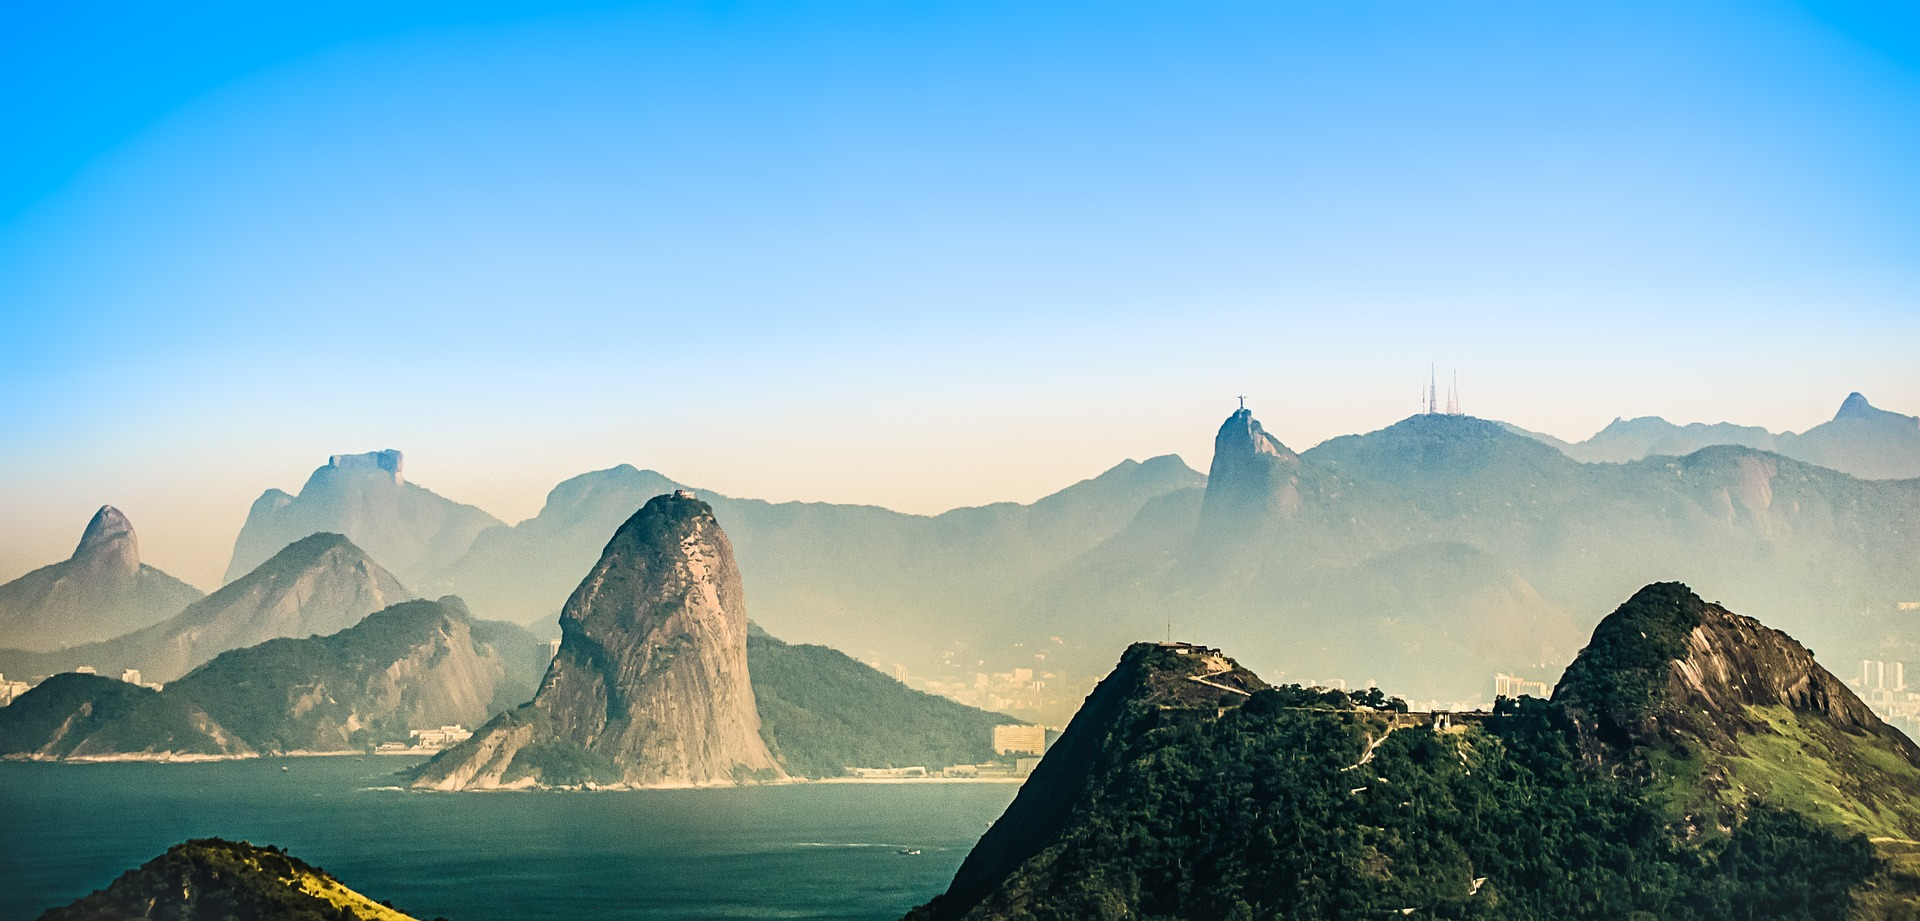 Brazilian PV has seen 73 projects win contracts at auctions since 2014 (Credit: Nuno Lopes / Pixabay)